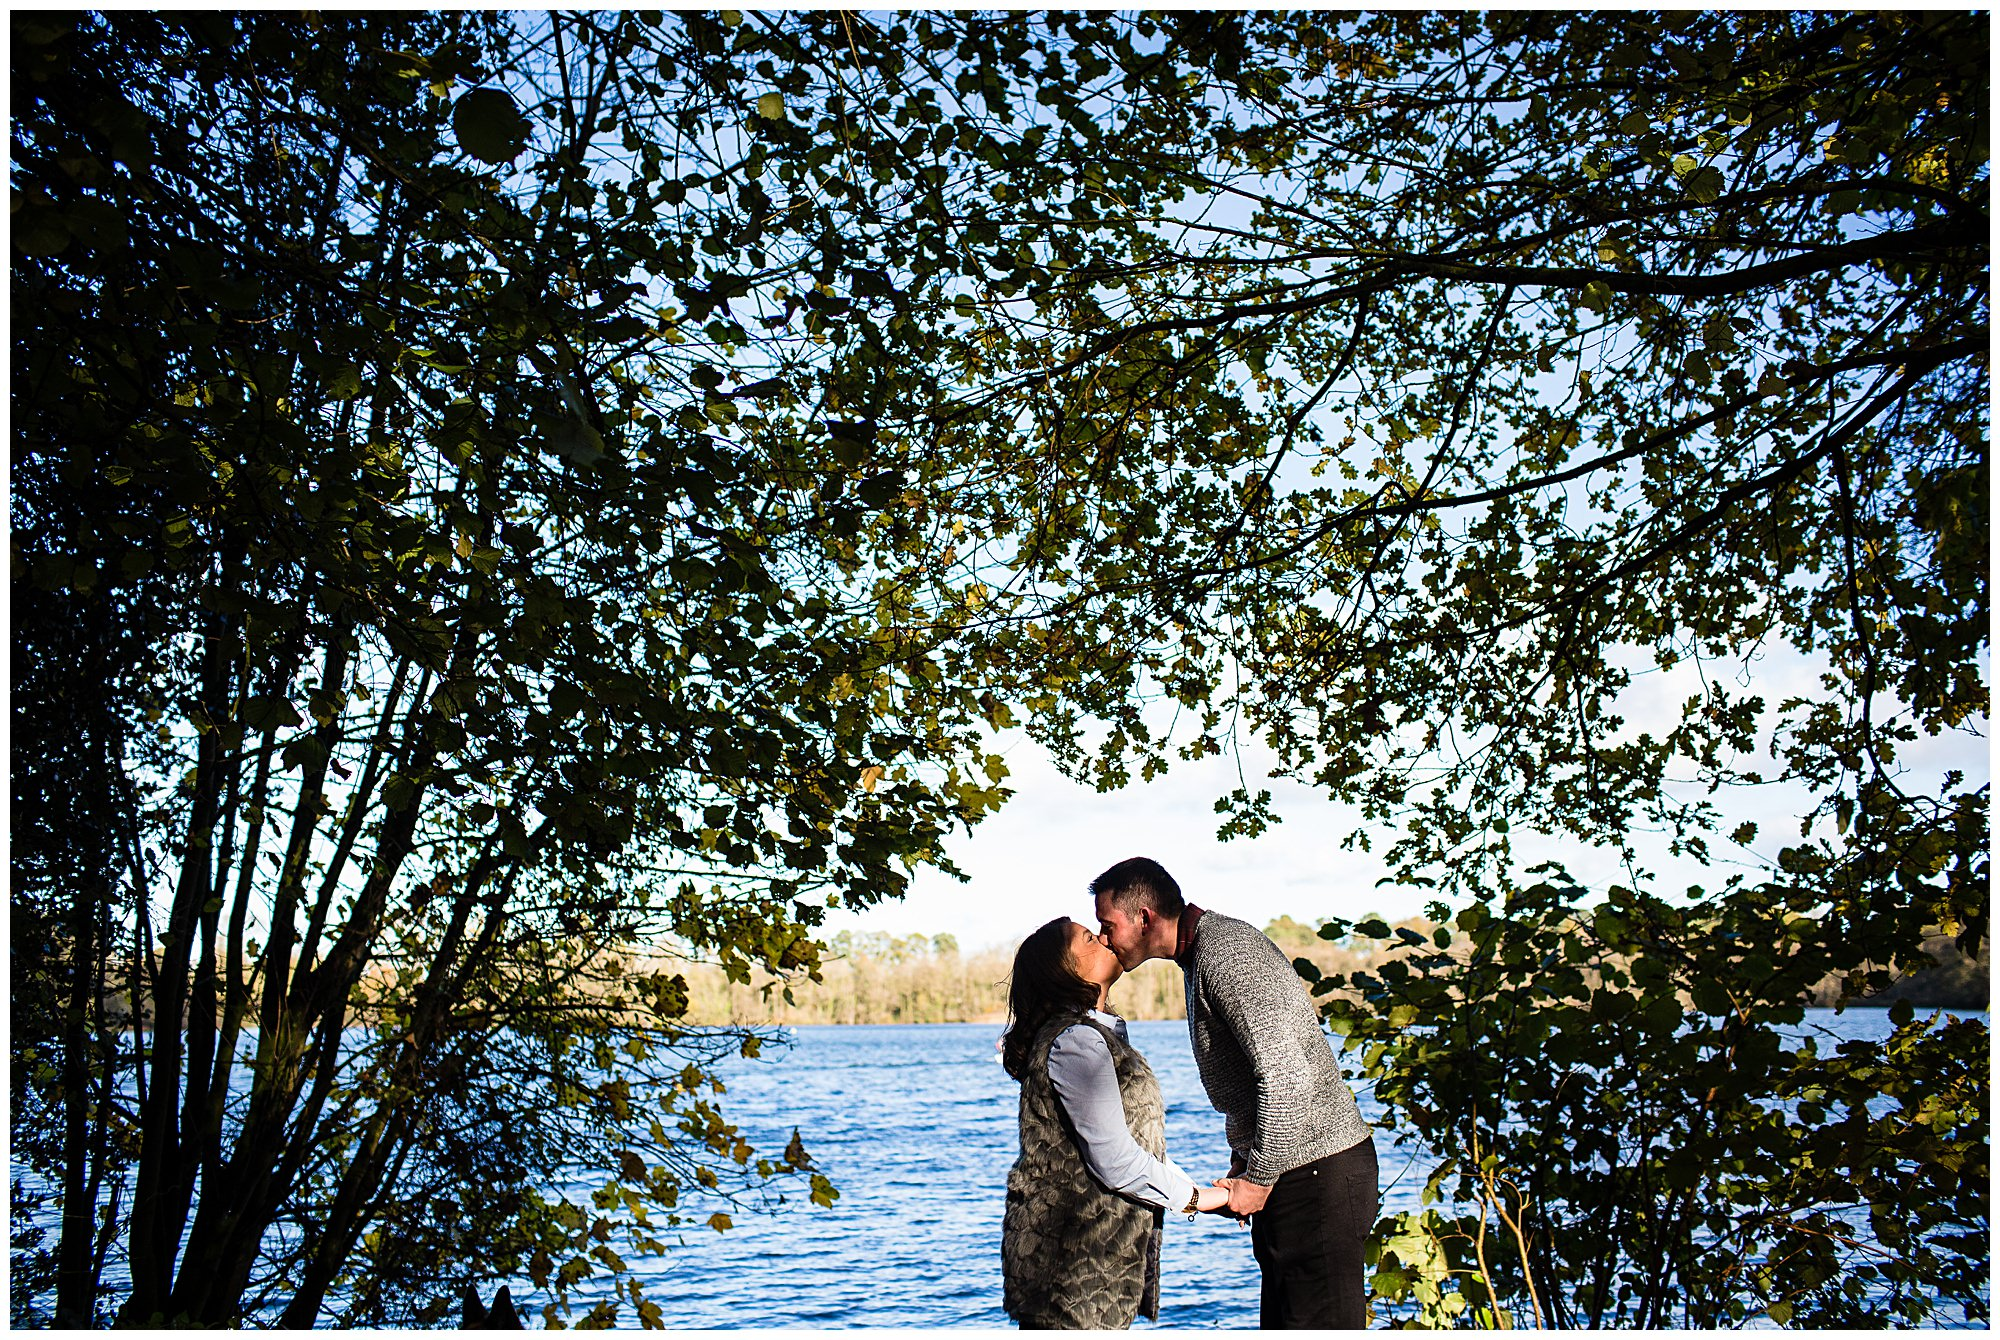 couple kissing with colemere mere in the background - shropshire photographer